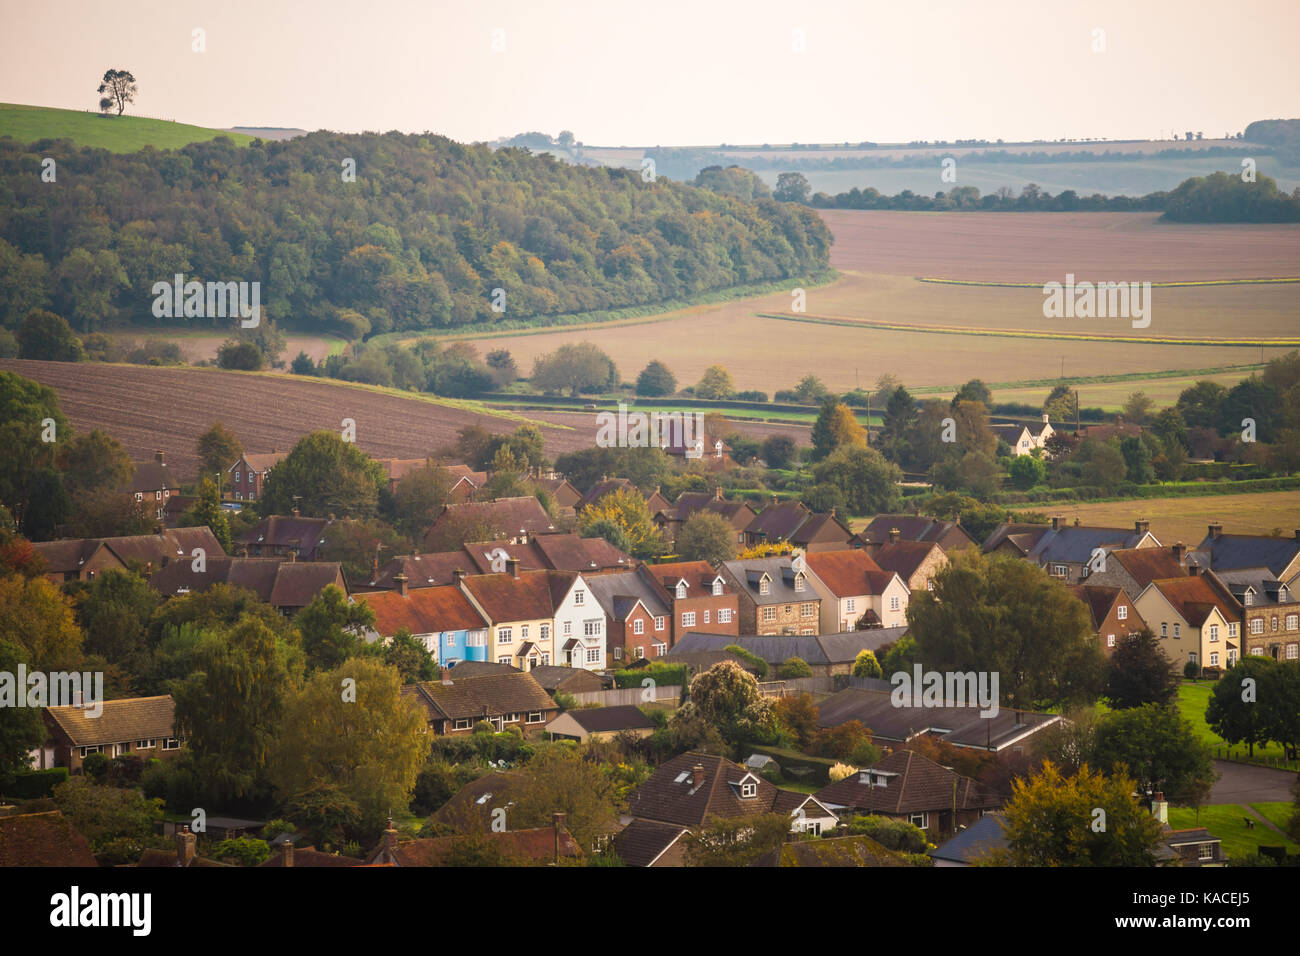 Scenic view over the quaint village of East Meon during autumn in the South Downs, Hampshire, England, UK - Stock Image